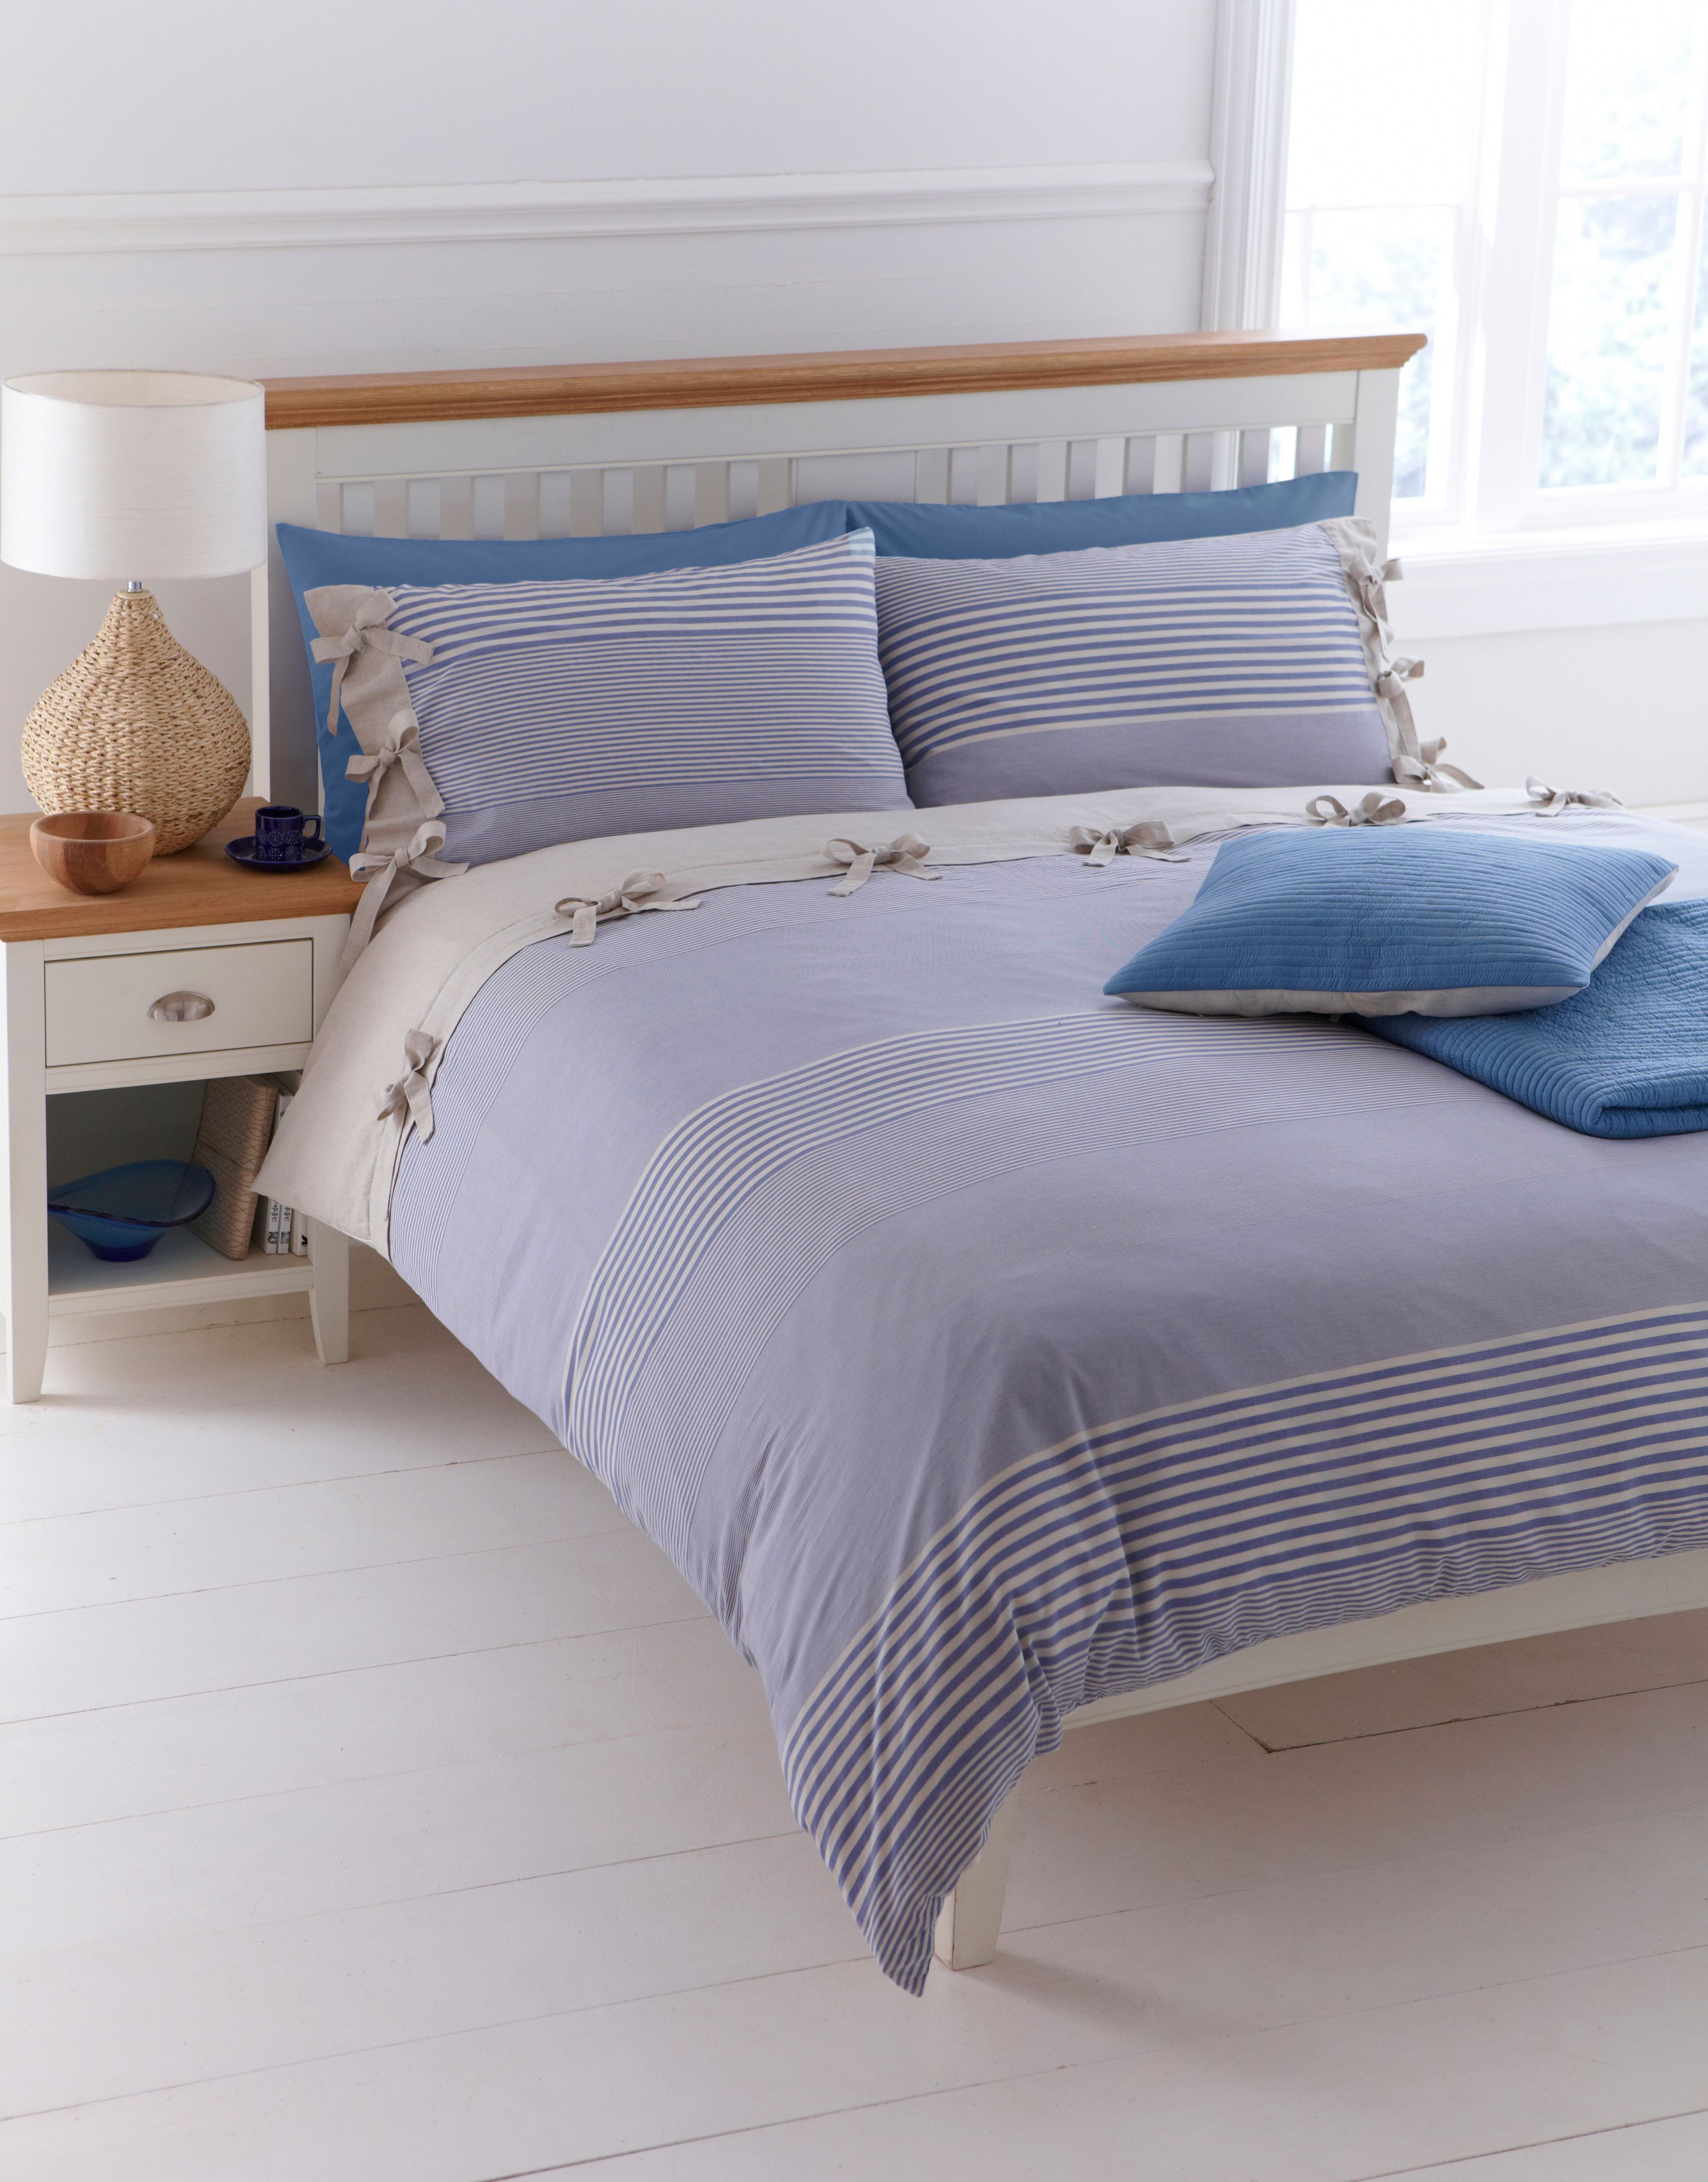 Woven stripe bed linen sets